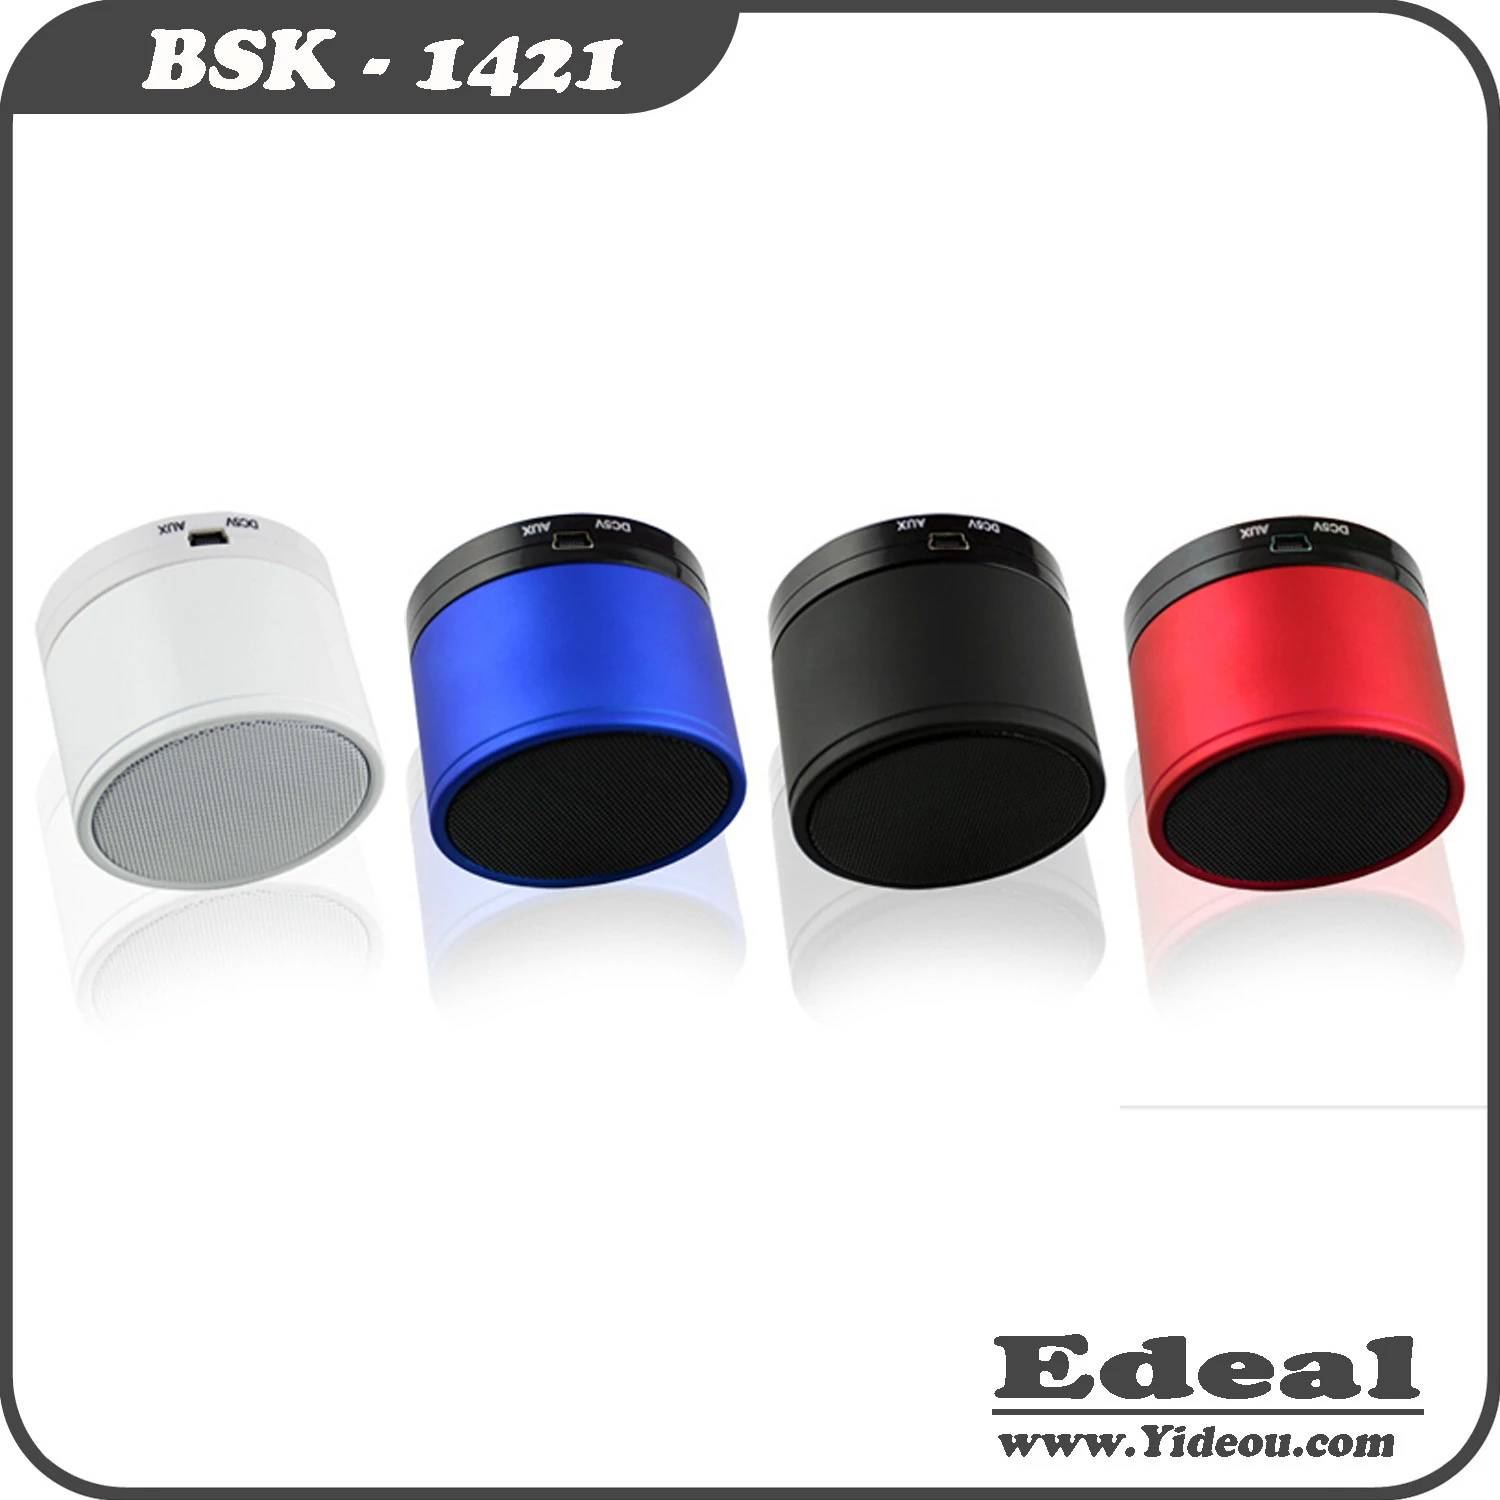 world best selling product blue tooth speaker rechargeable speaker